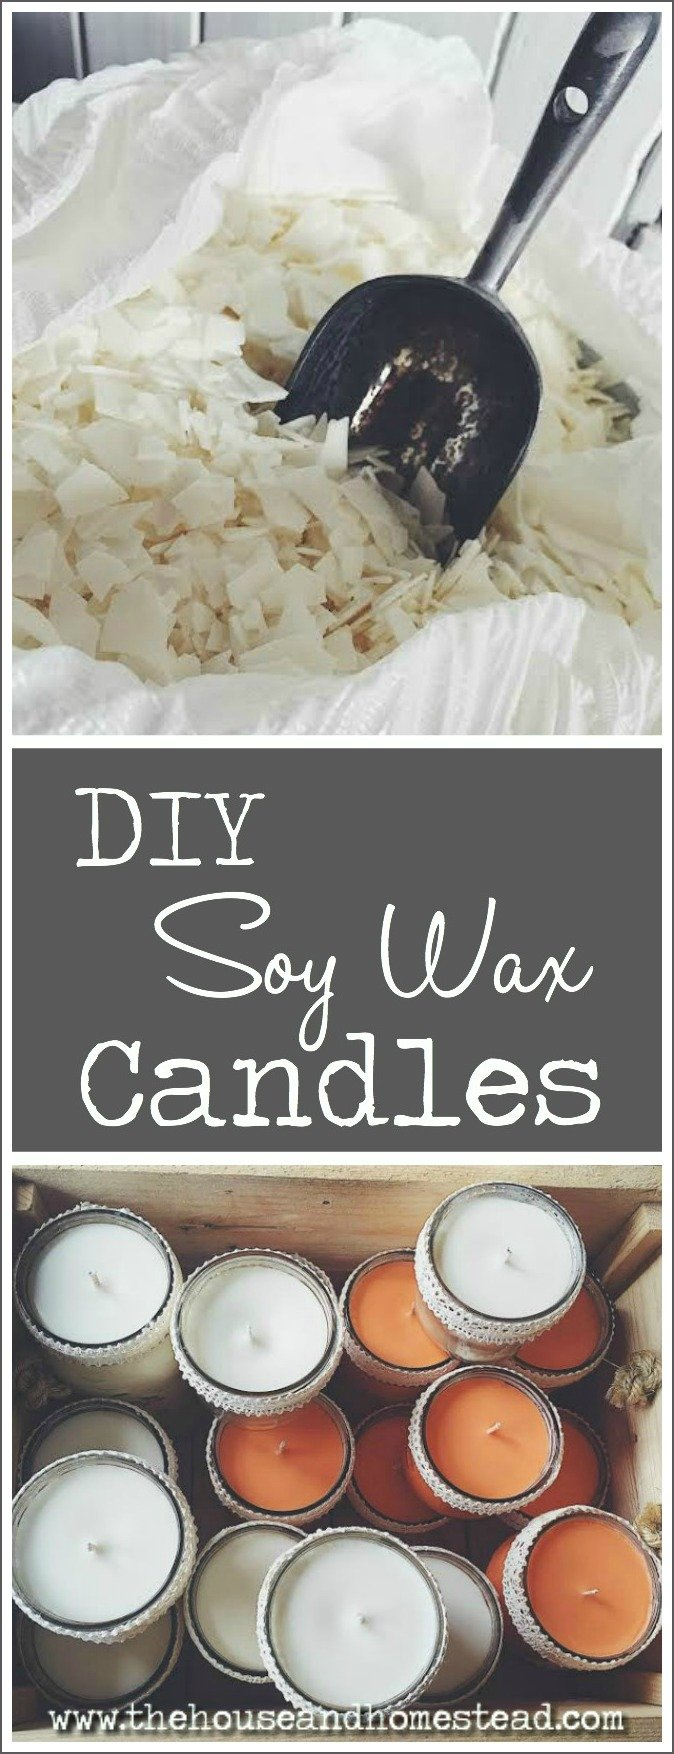 Homemade Soy Wax Candles A Step By Tutorial For Making Scented